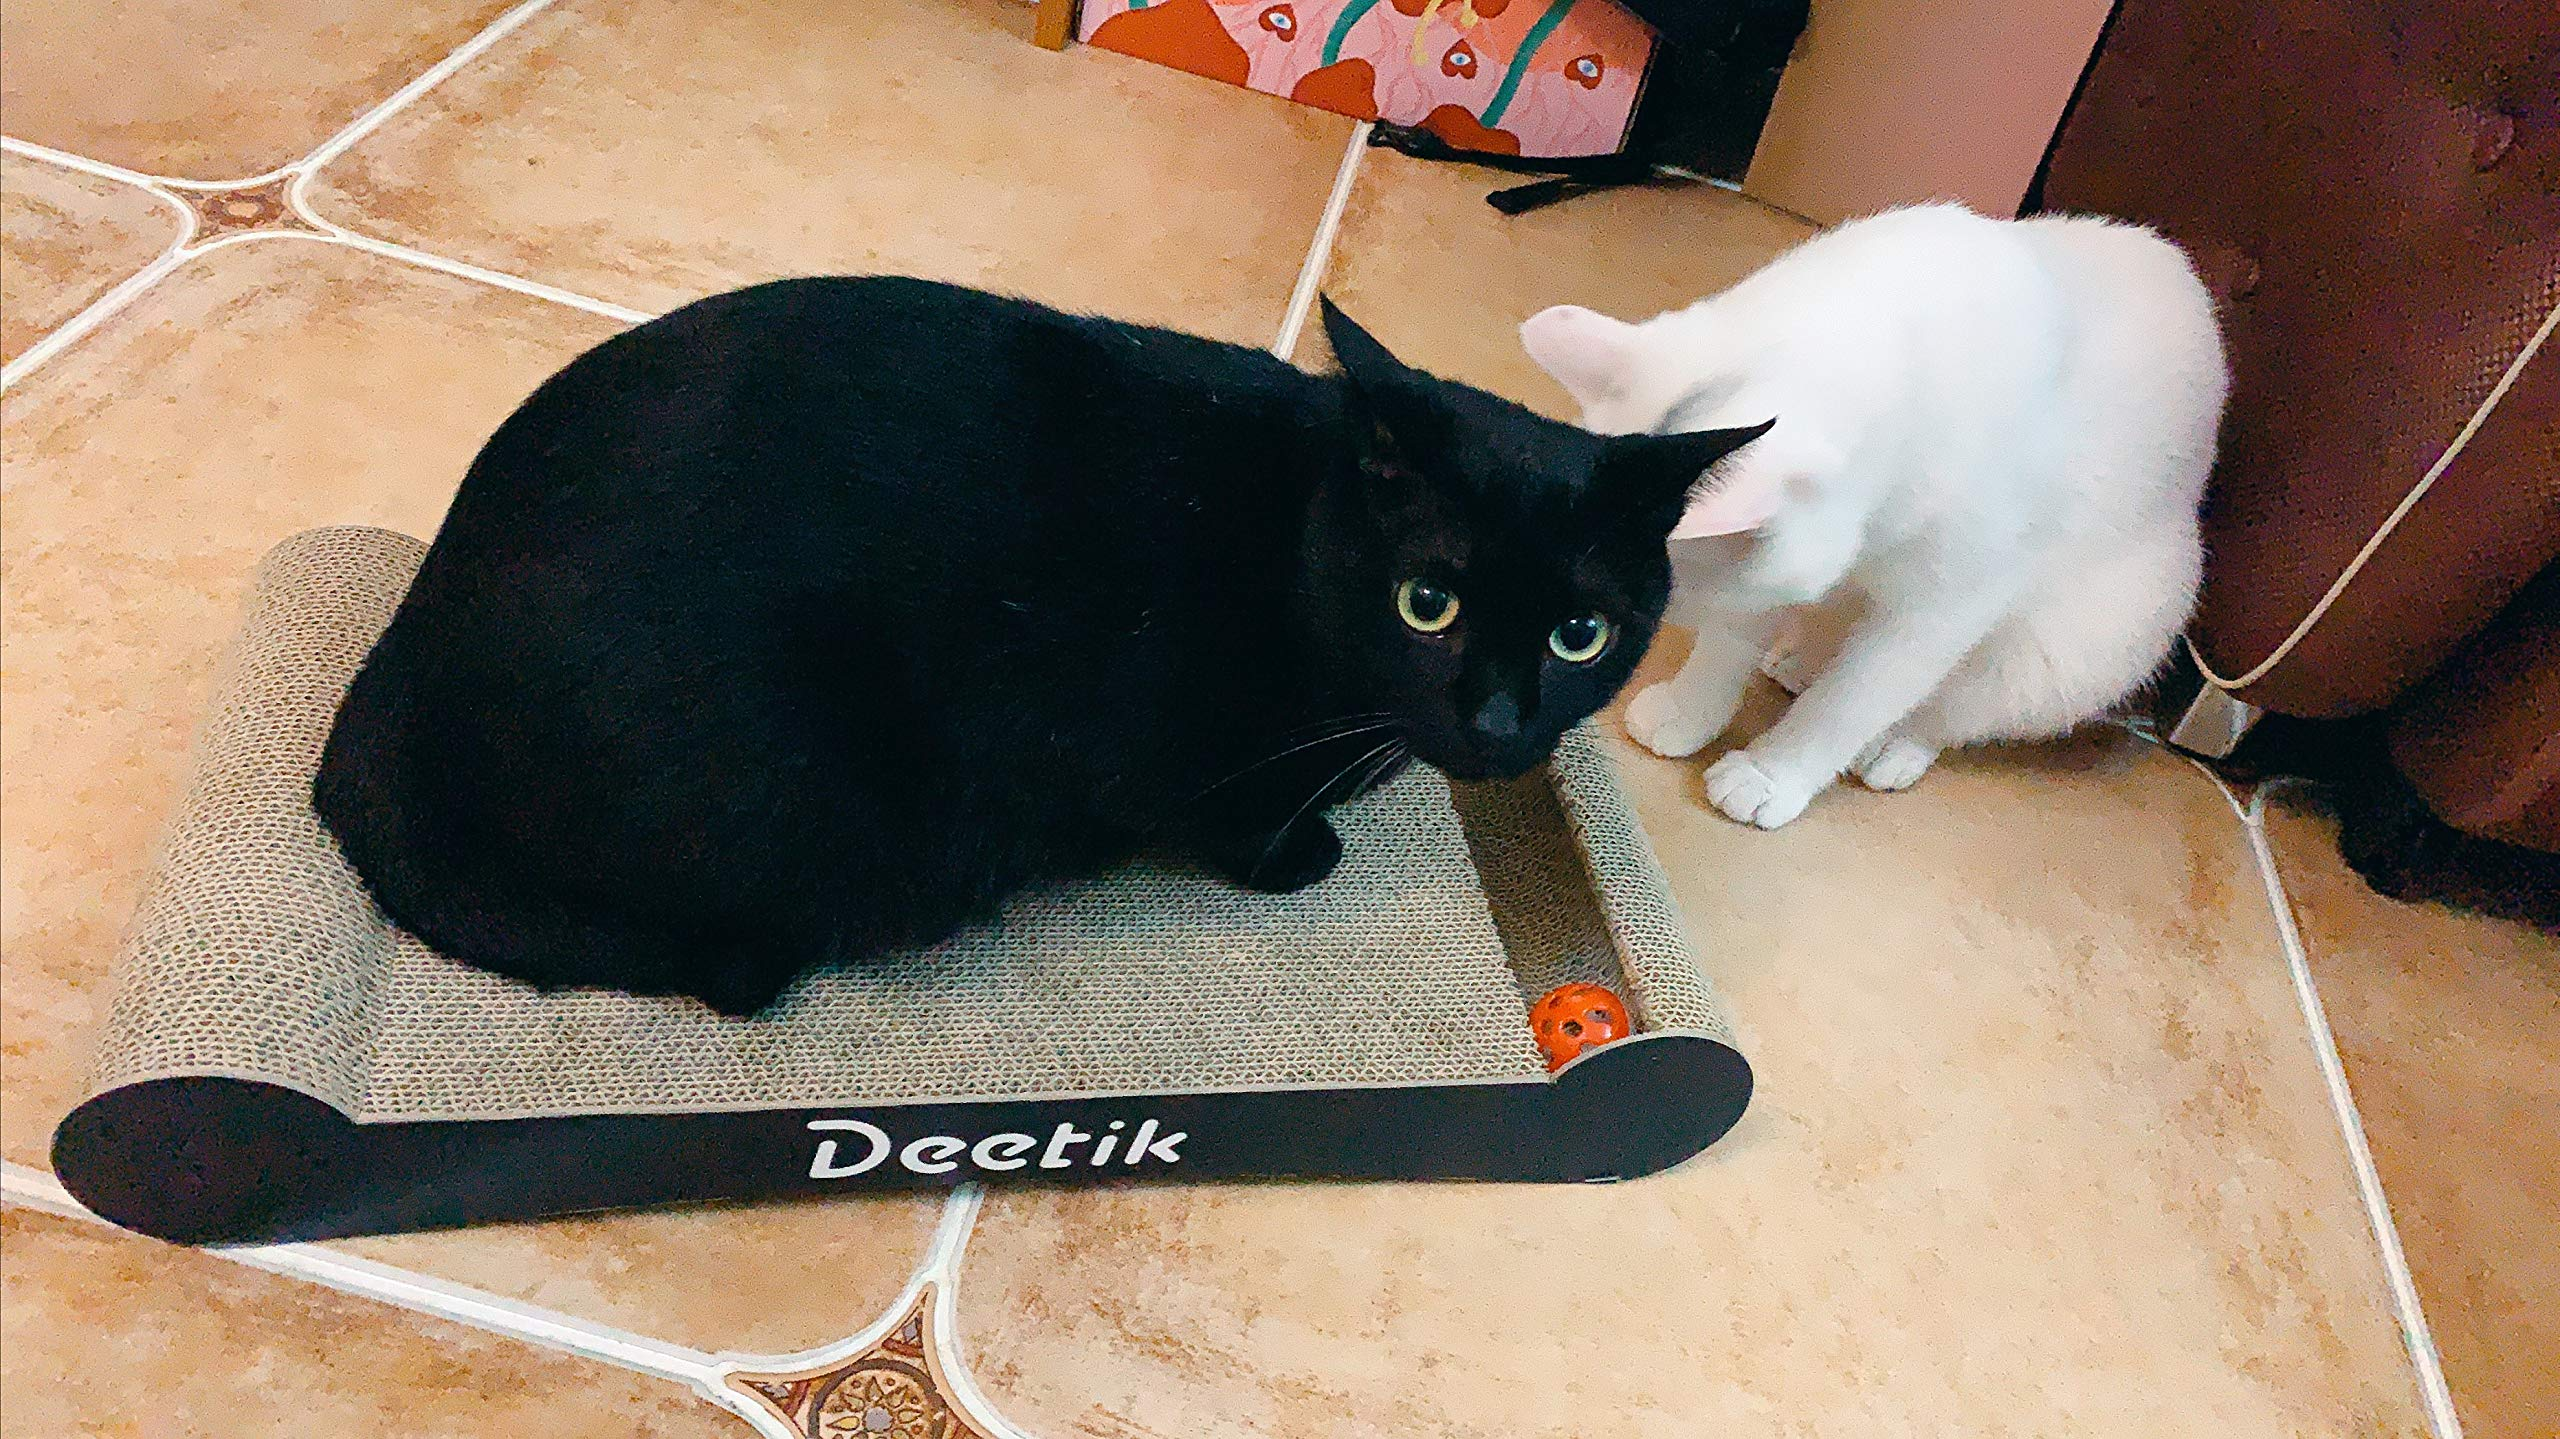 deetik Large Cat Scratcher, Scratching Pad, with Rolling Bell Ball Toy and Catnip, Wide and Durable (Black) by deetik